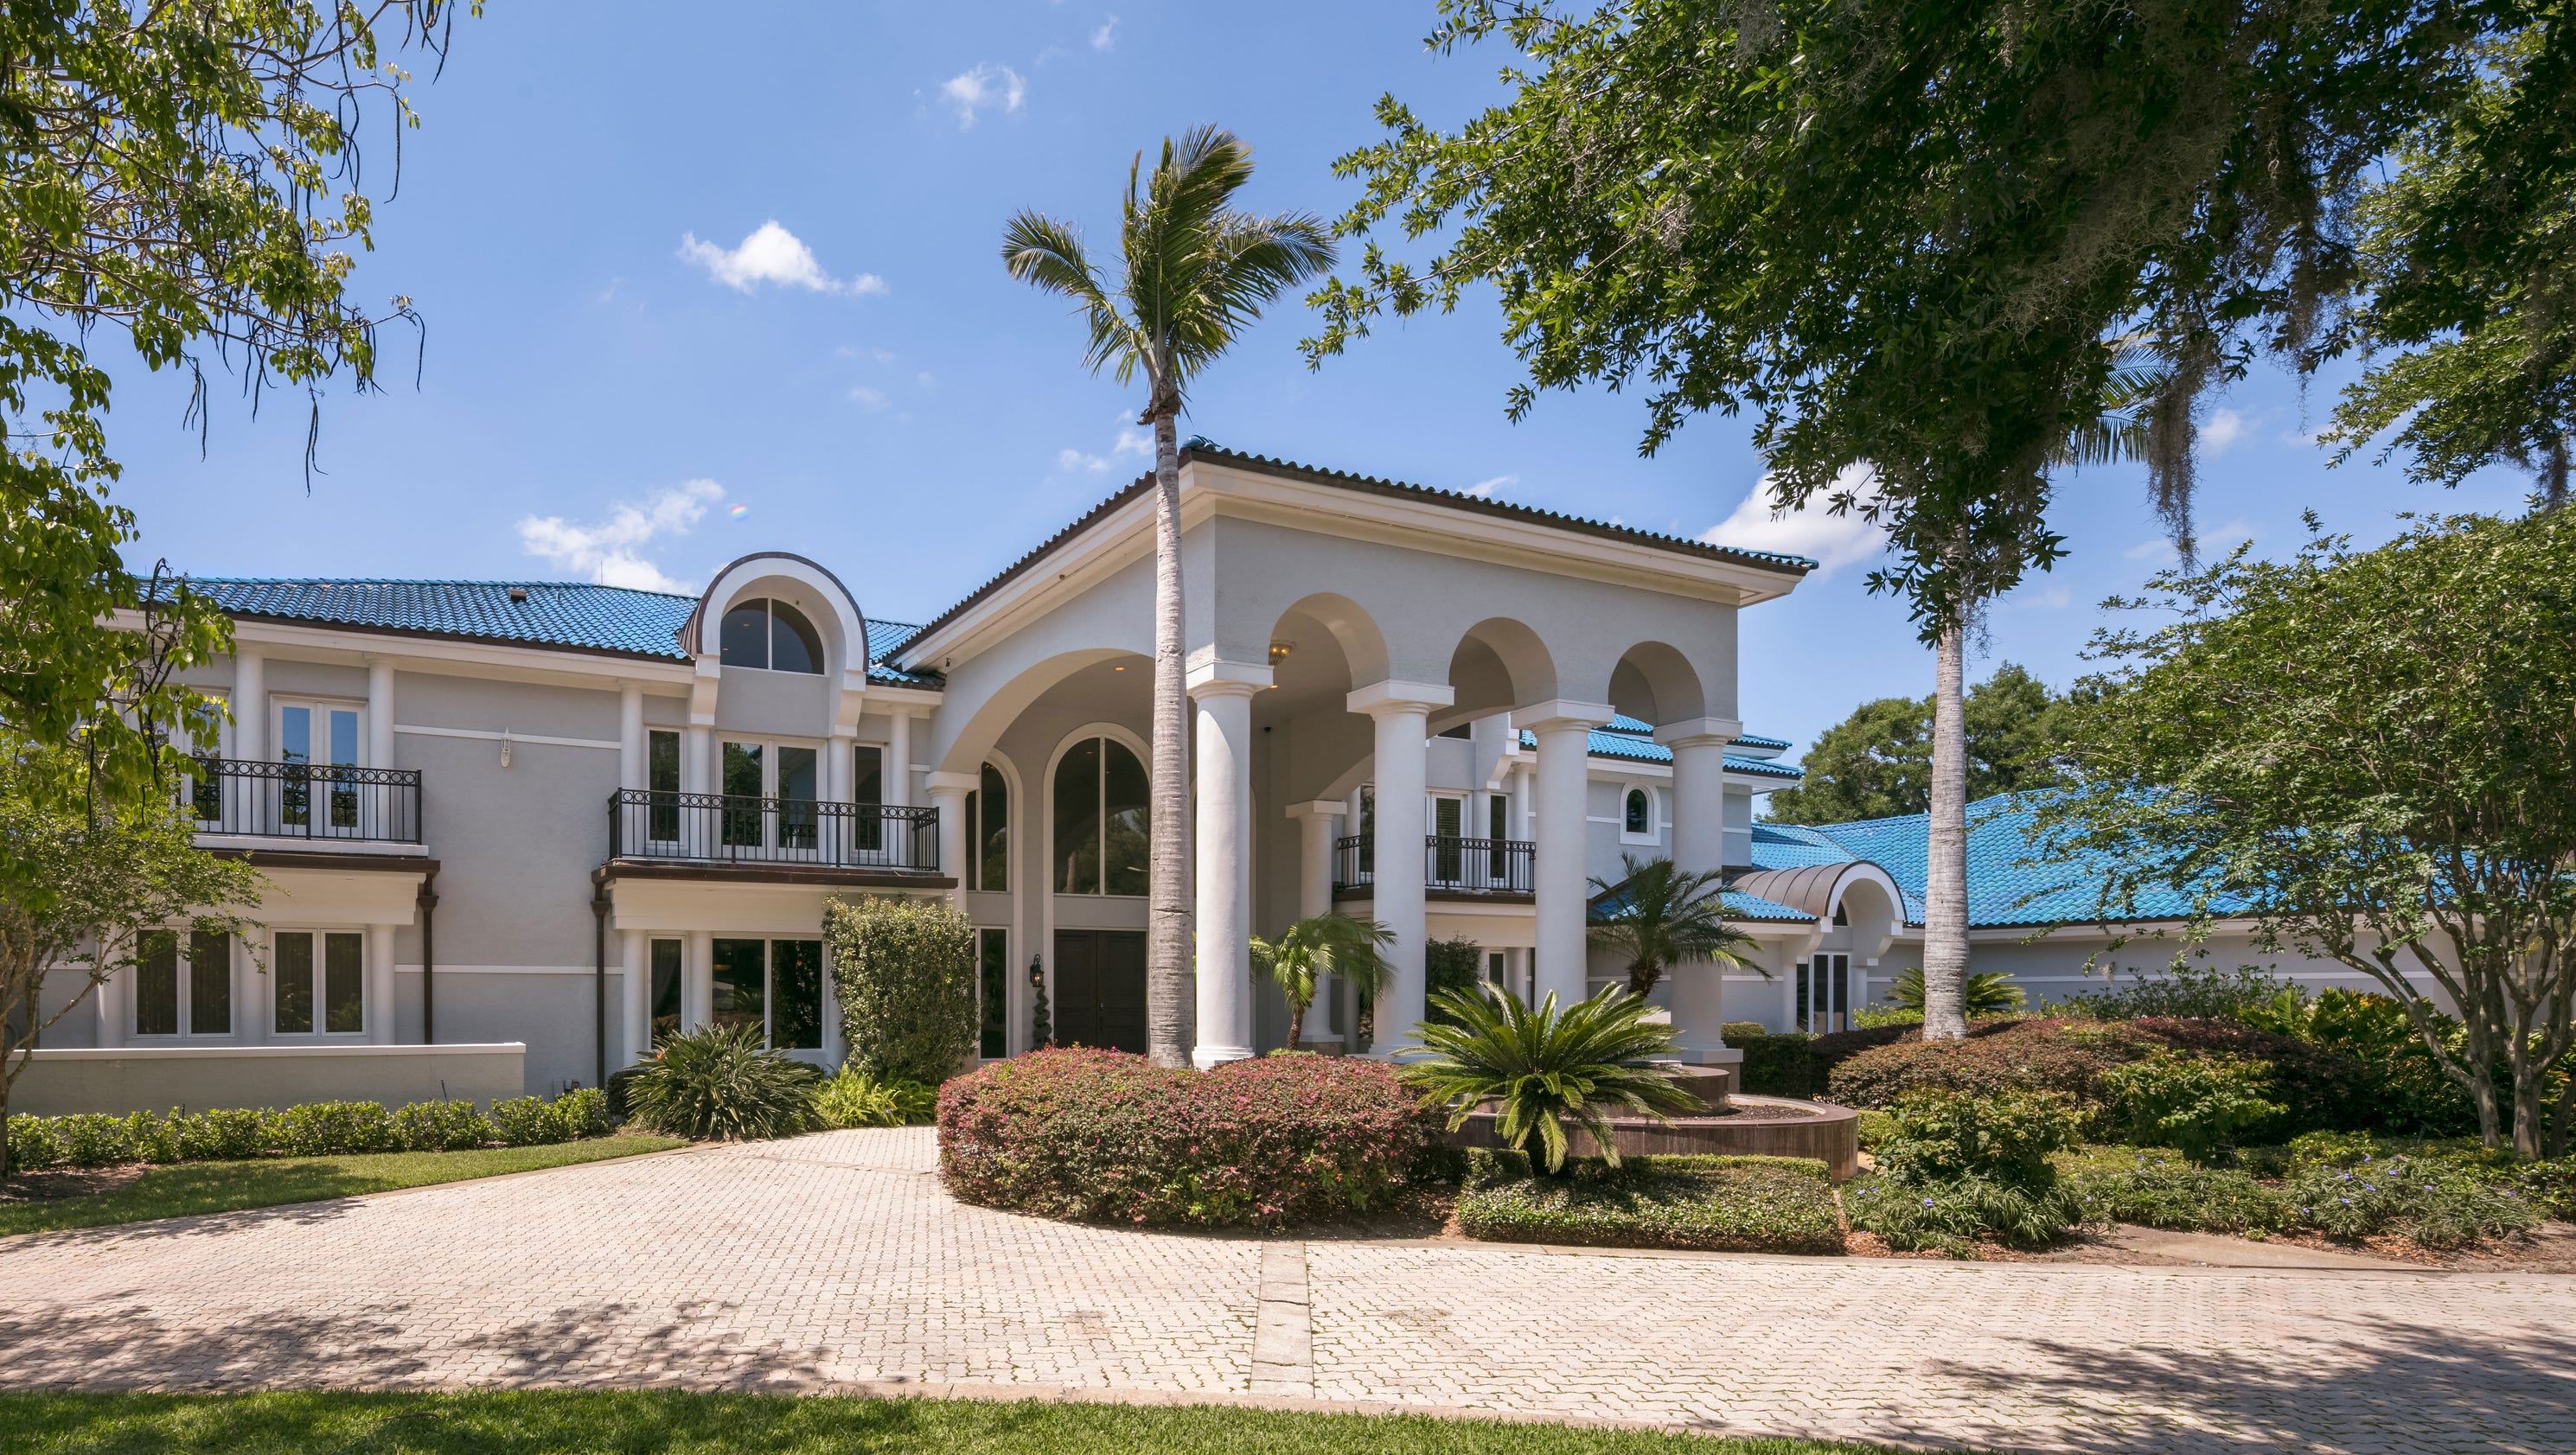 Photos shaquille o 39 neal s florida mansion for sale for Shaquille o neal s home